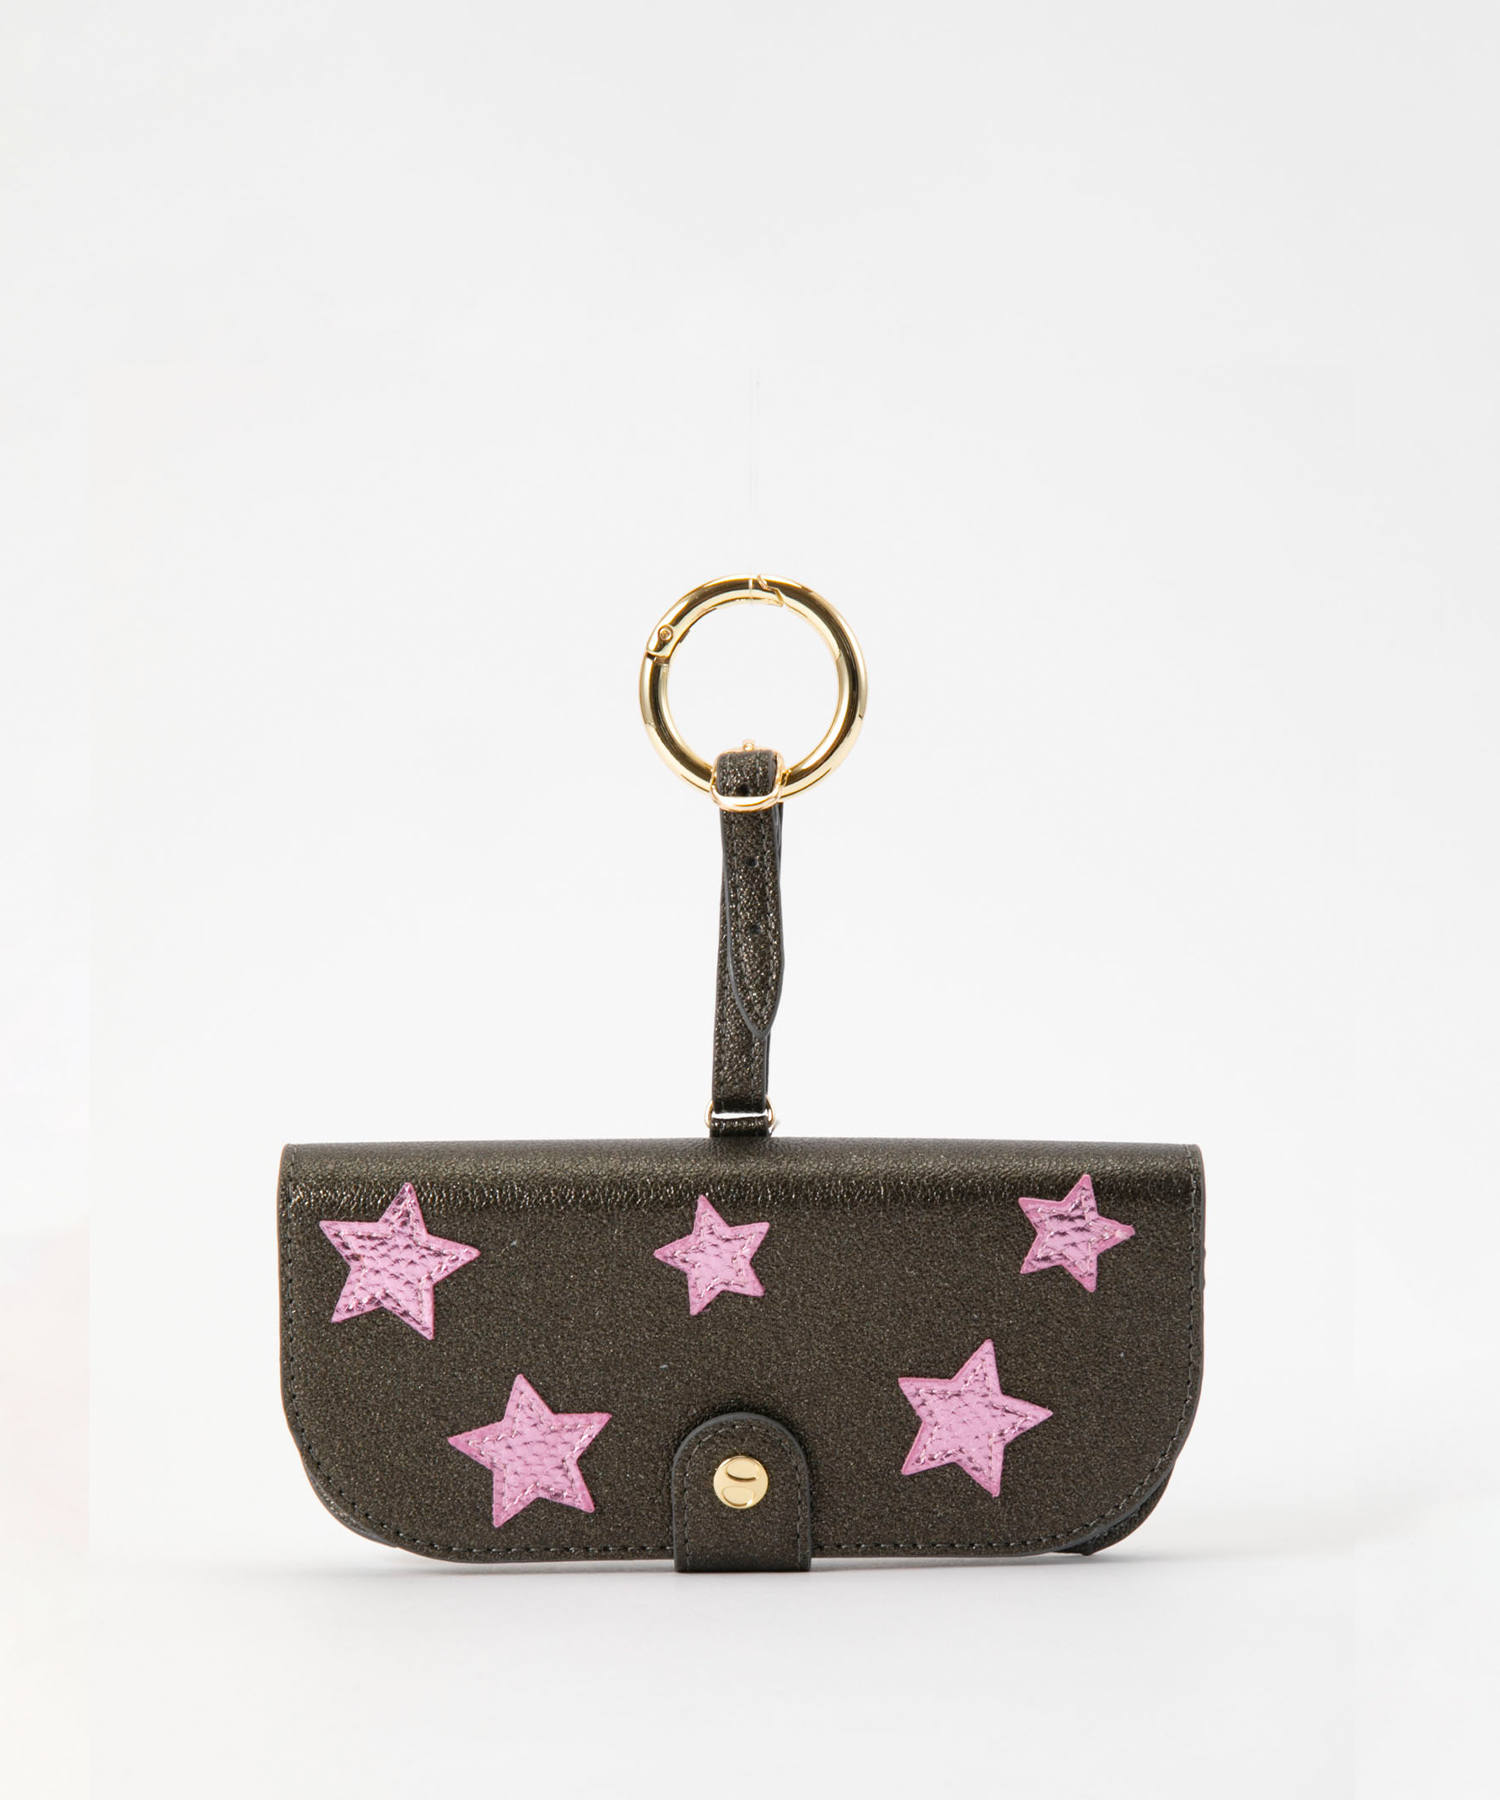 Glasses Case with Bag Holder - Olive Green With Pink Stars & hook in gold